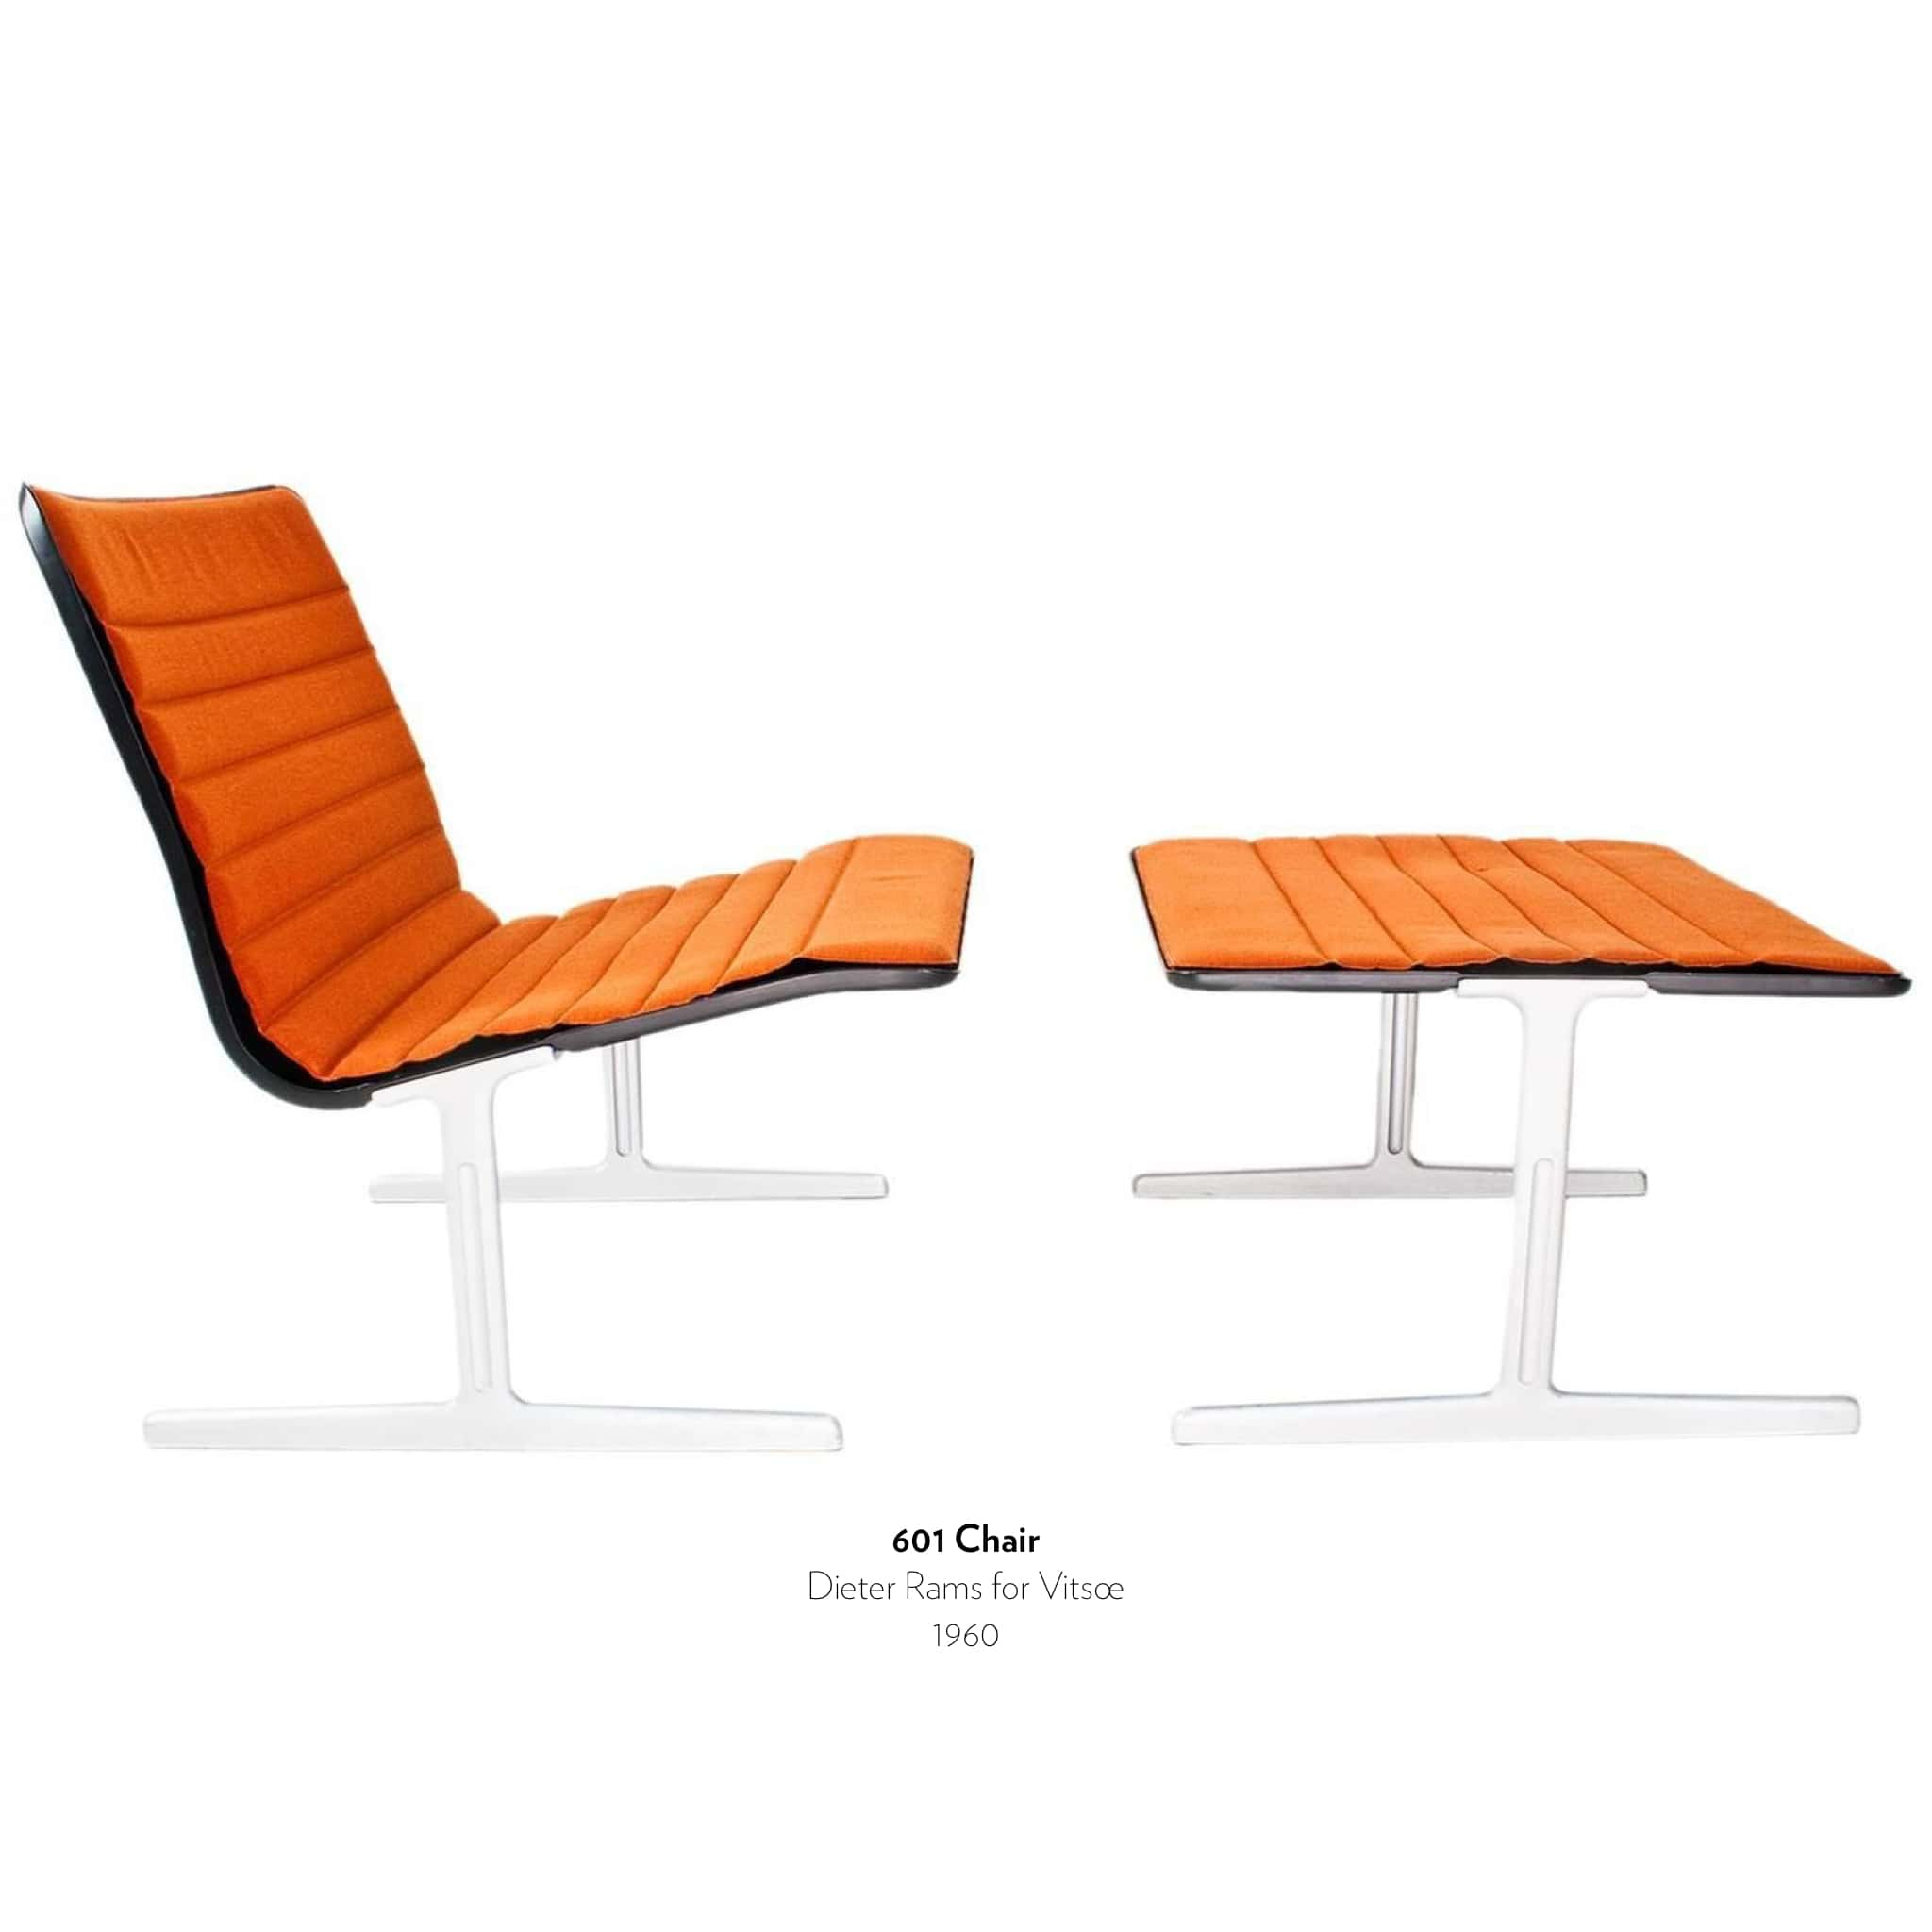 601 Chair designed by Dieter Rams for Vitsoe in 1960.